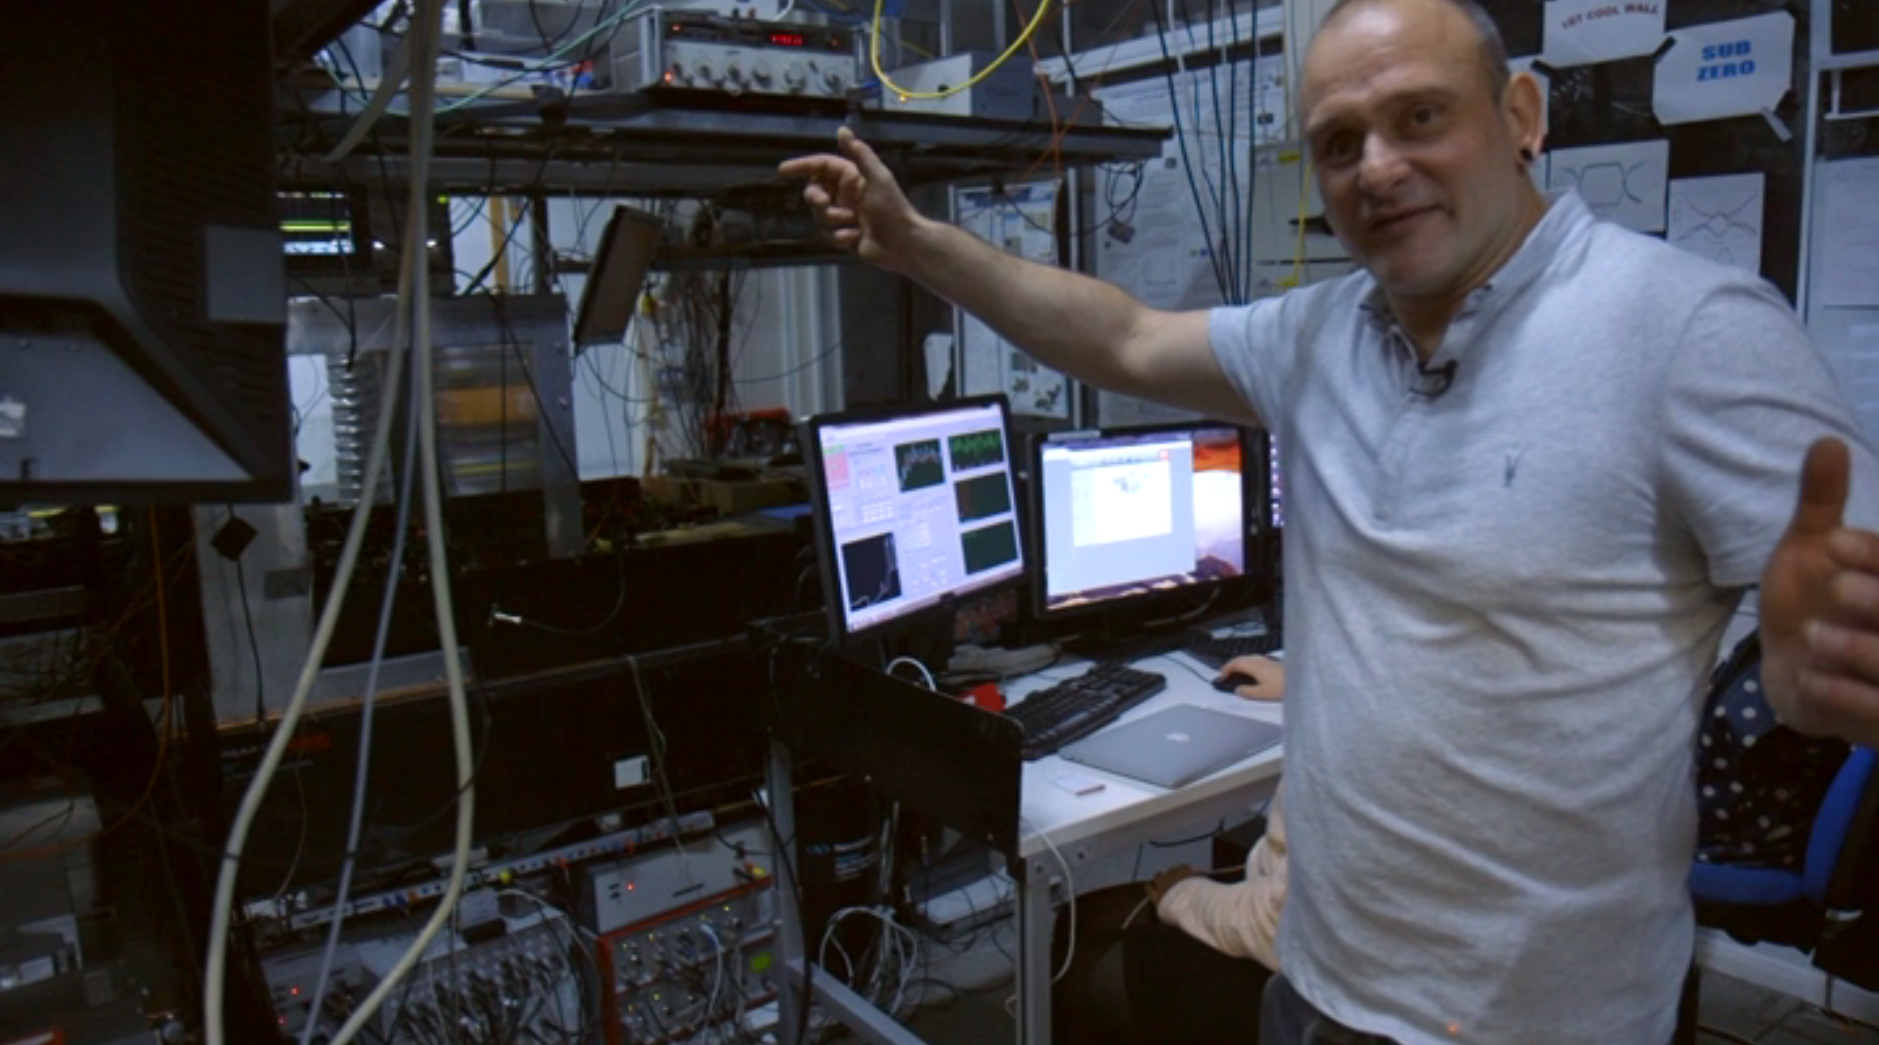 Professor Winfried Hensinger is in his lab in Sussex, explaining how you build a quantum computer